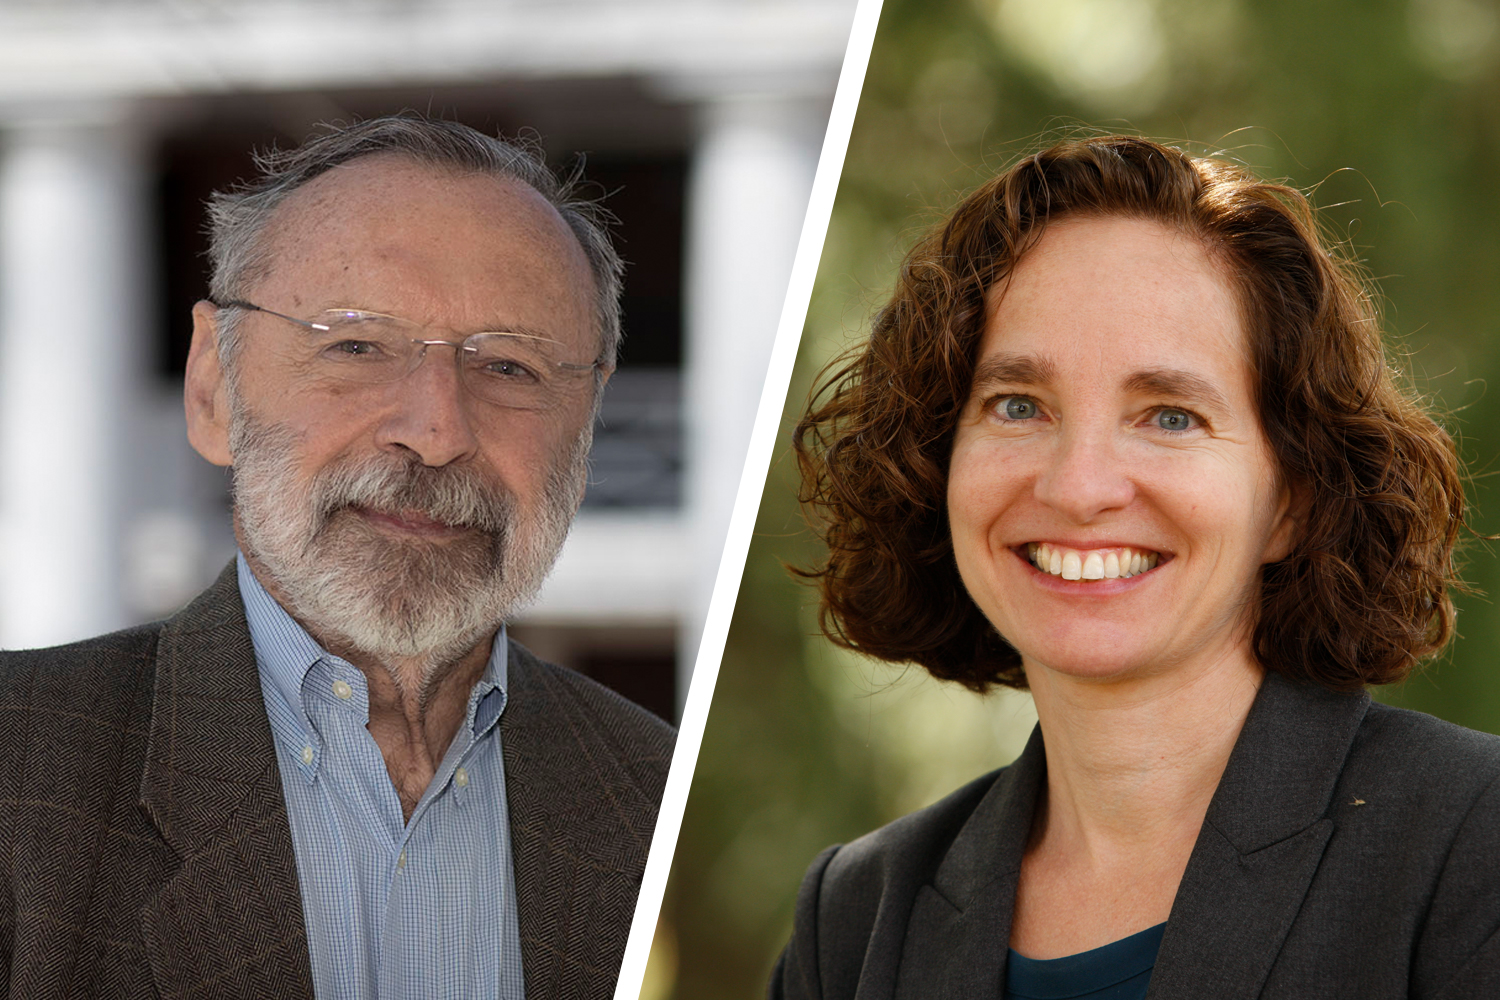 History professor emeritus Joseph Miller, left, and School of Law Dean Risa Goluboff become the University's 37th and 38th fellows of the American Academy of Arts and Sciences. (Photos by Dan Addison, left, and UVA School of Law)